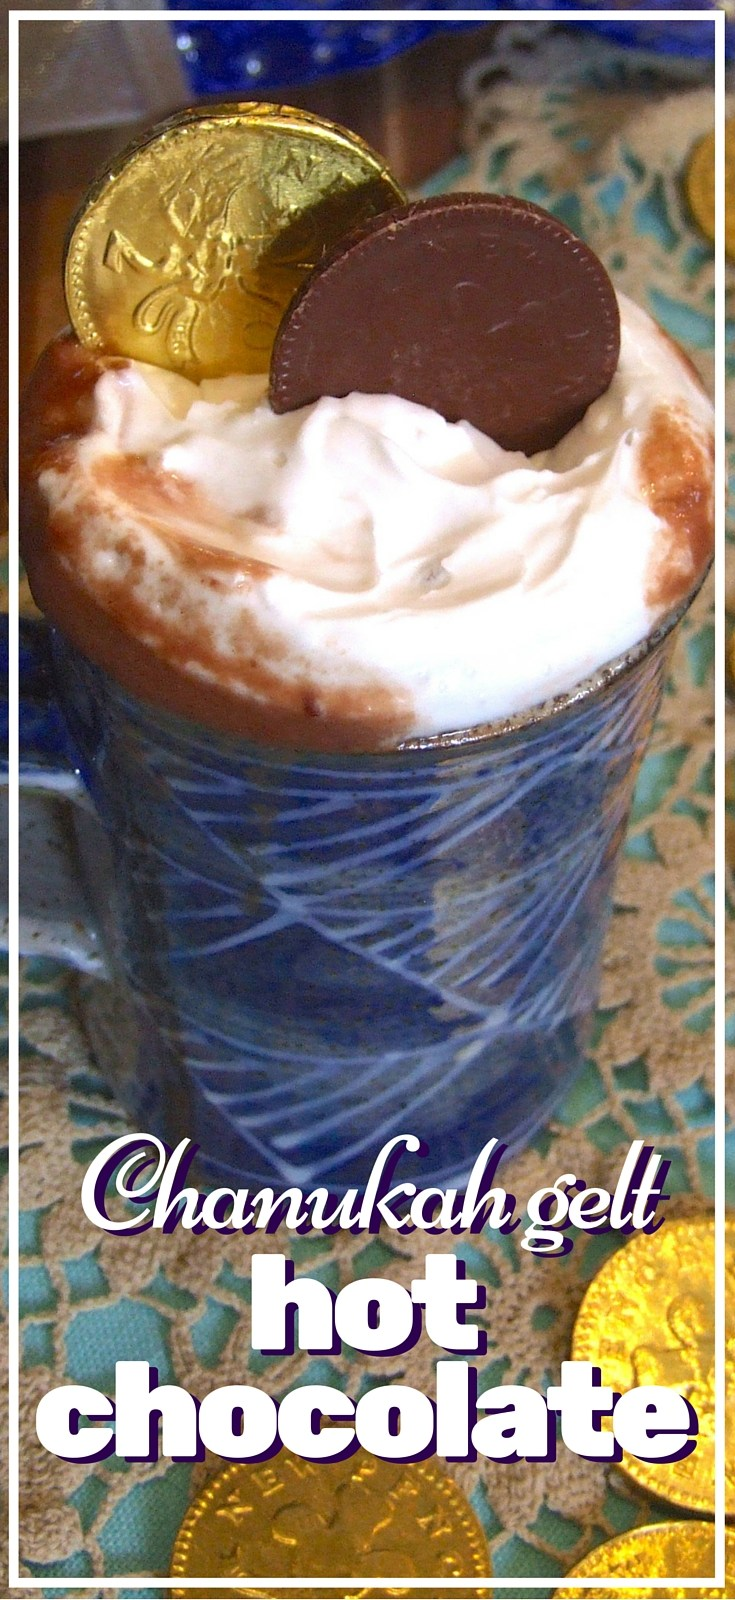 This clever hot chocolate recipe from  Family Friends Food  uses Hanukkah gelt to make hot chocolate. Brilliant!